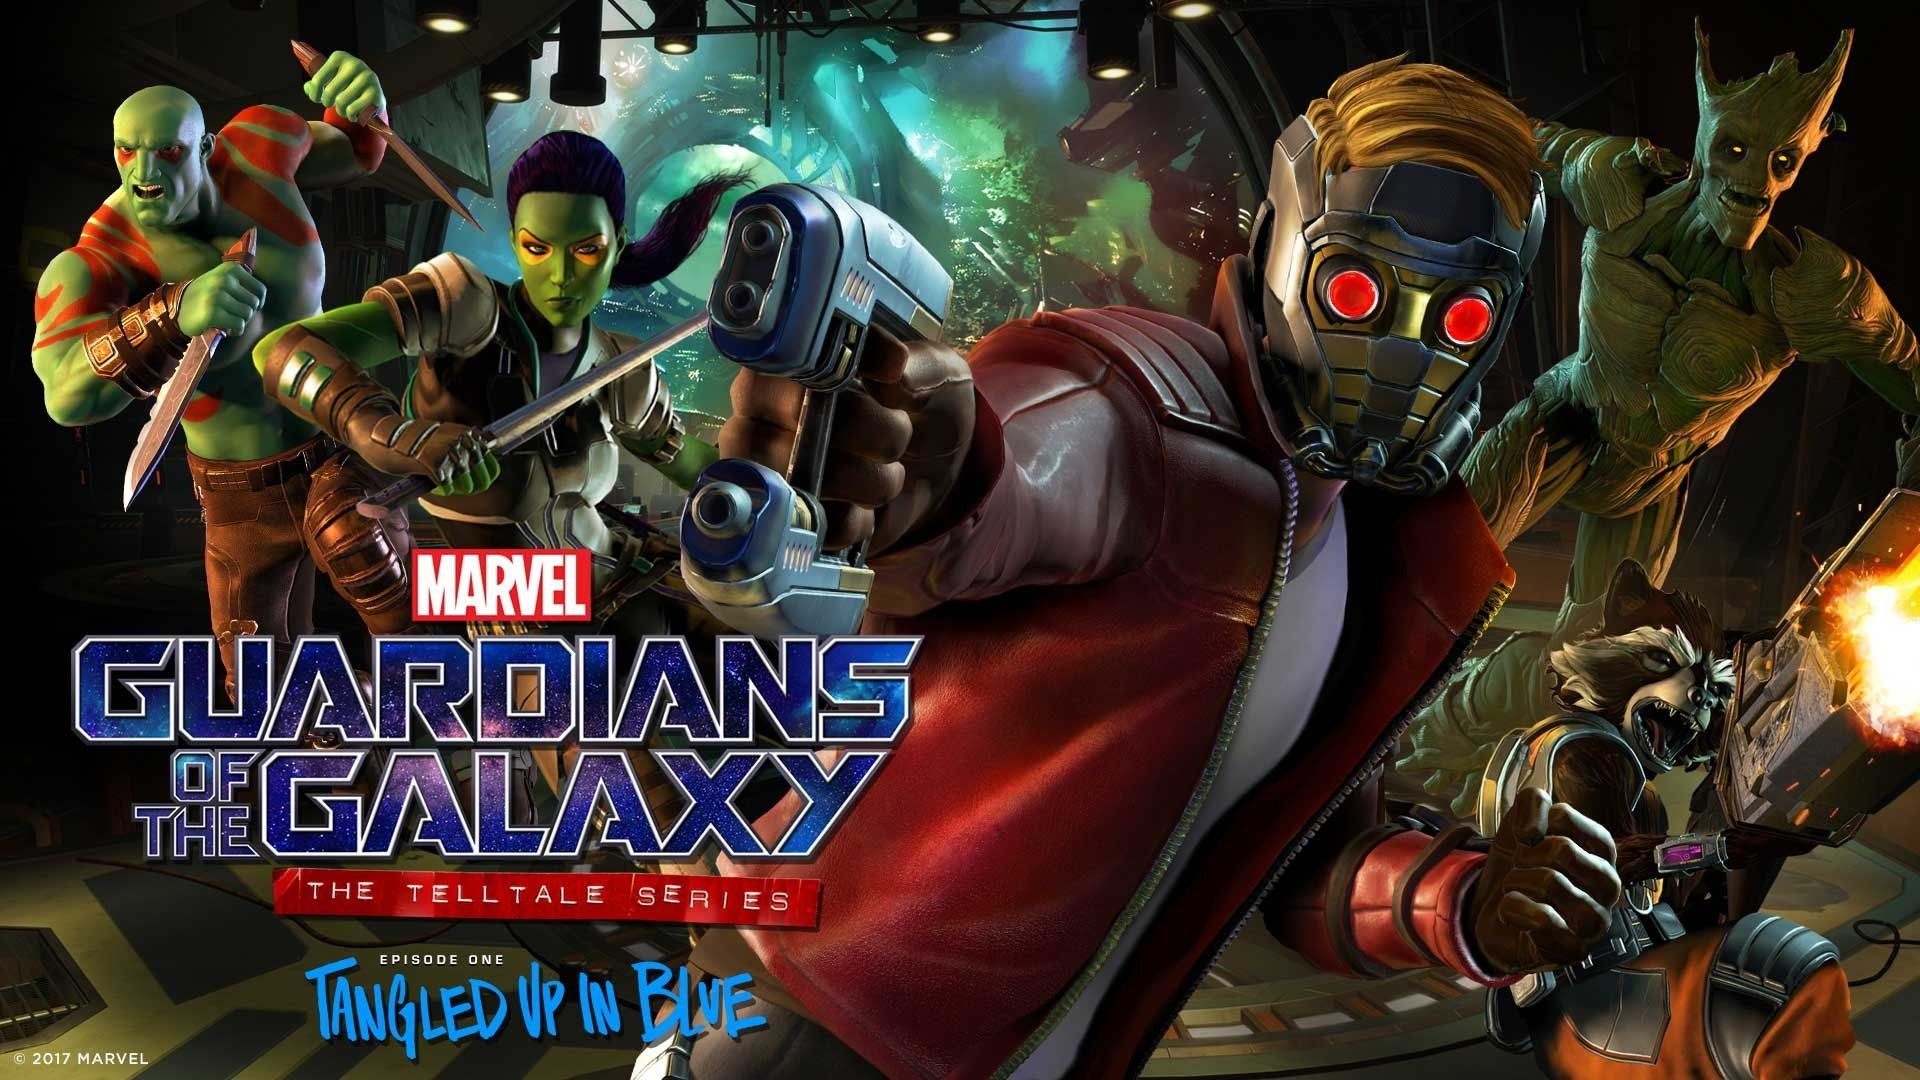 Guardians Of The Galaxy Telltale Series Full HD Wallpaper And